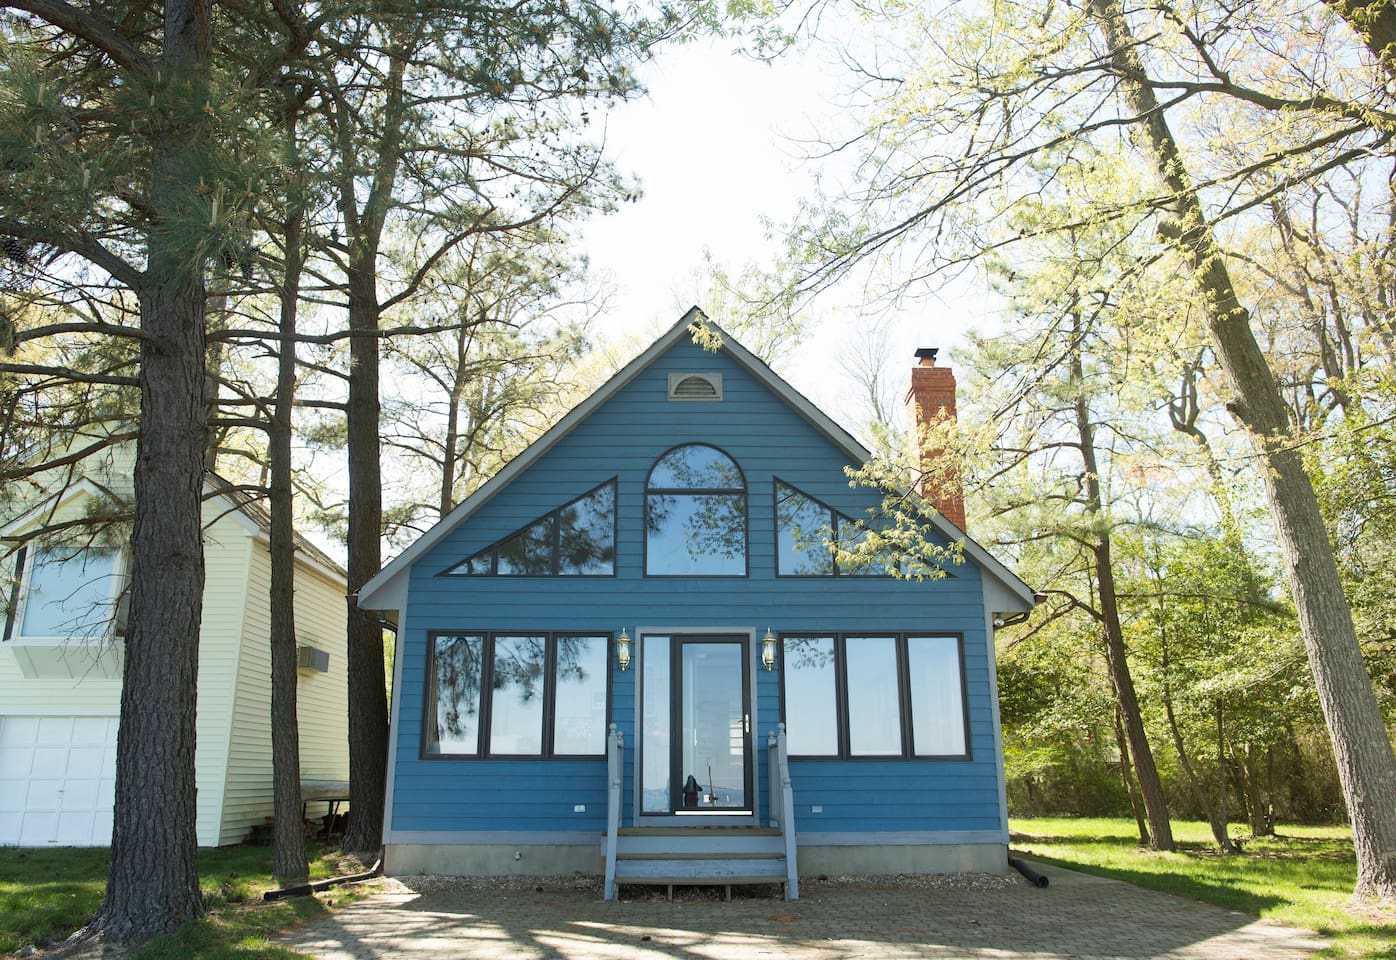 Originally built as a hunting lodge in 1990, the cottage was recently refurbished to feel airy and welcoming to beachgoers.